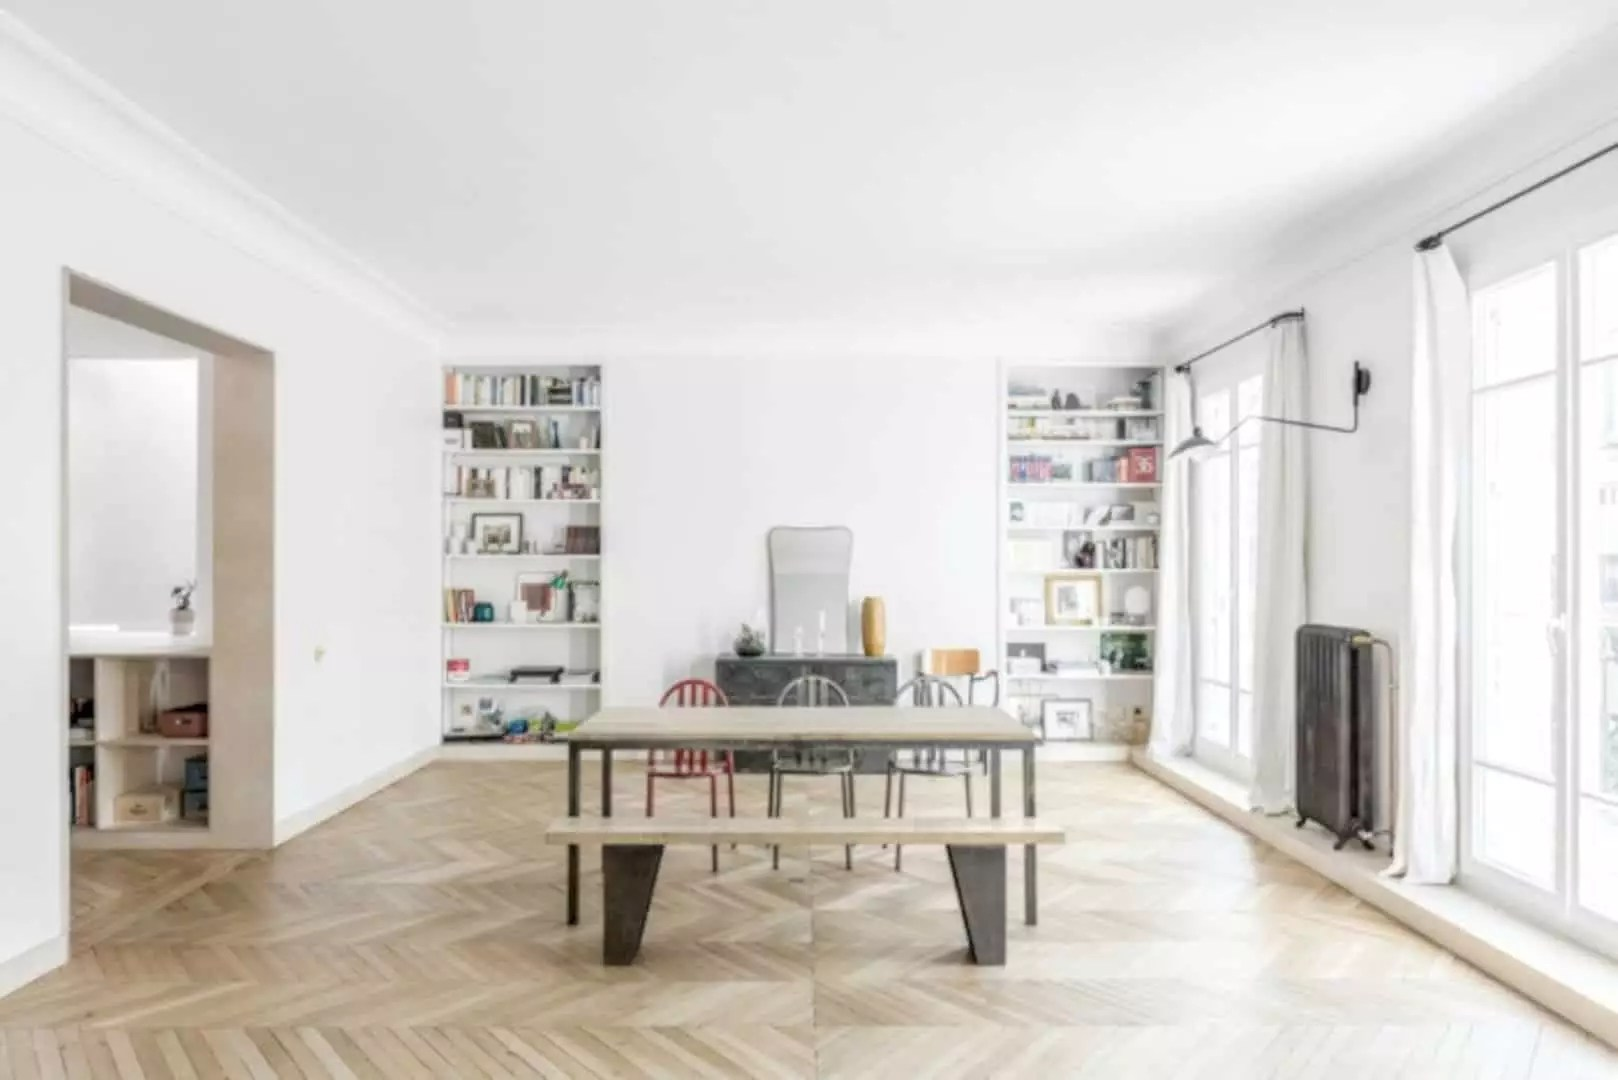 LEGRAND: New Apartment Structure with Warm and Modern Interior